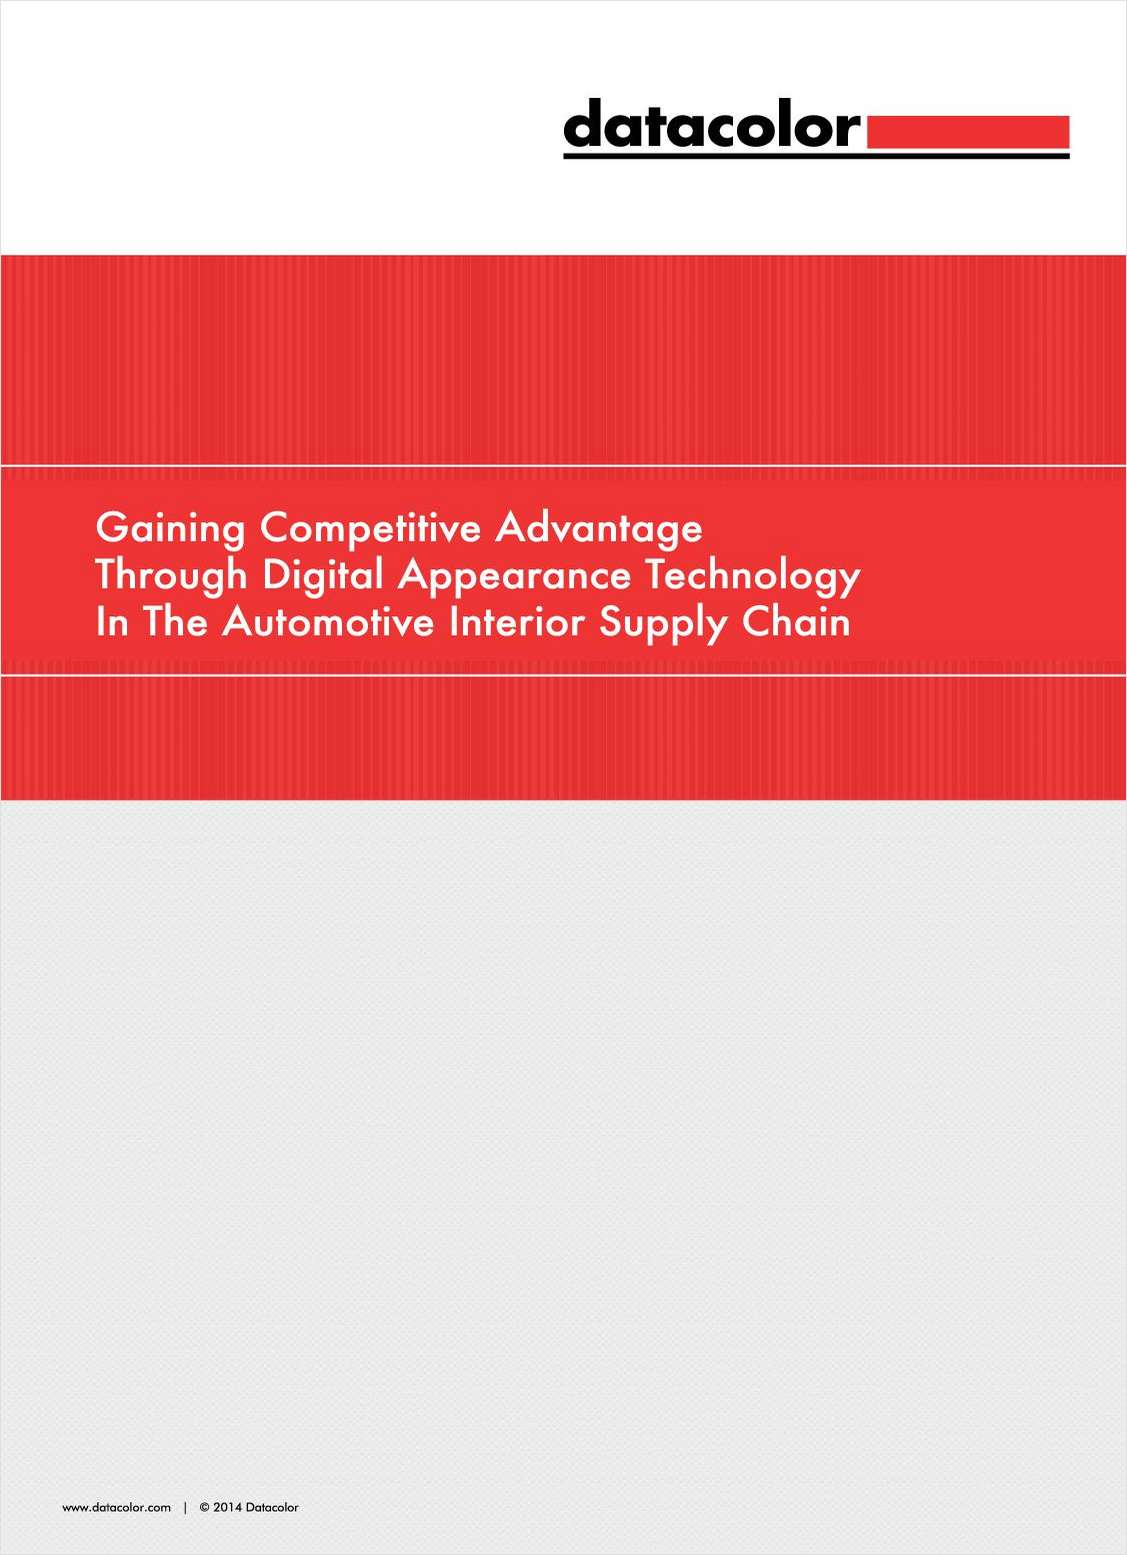 Gaining Competitive Advantage Through Digital Appearance Technology In The Automotive Interior Supply Chain